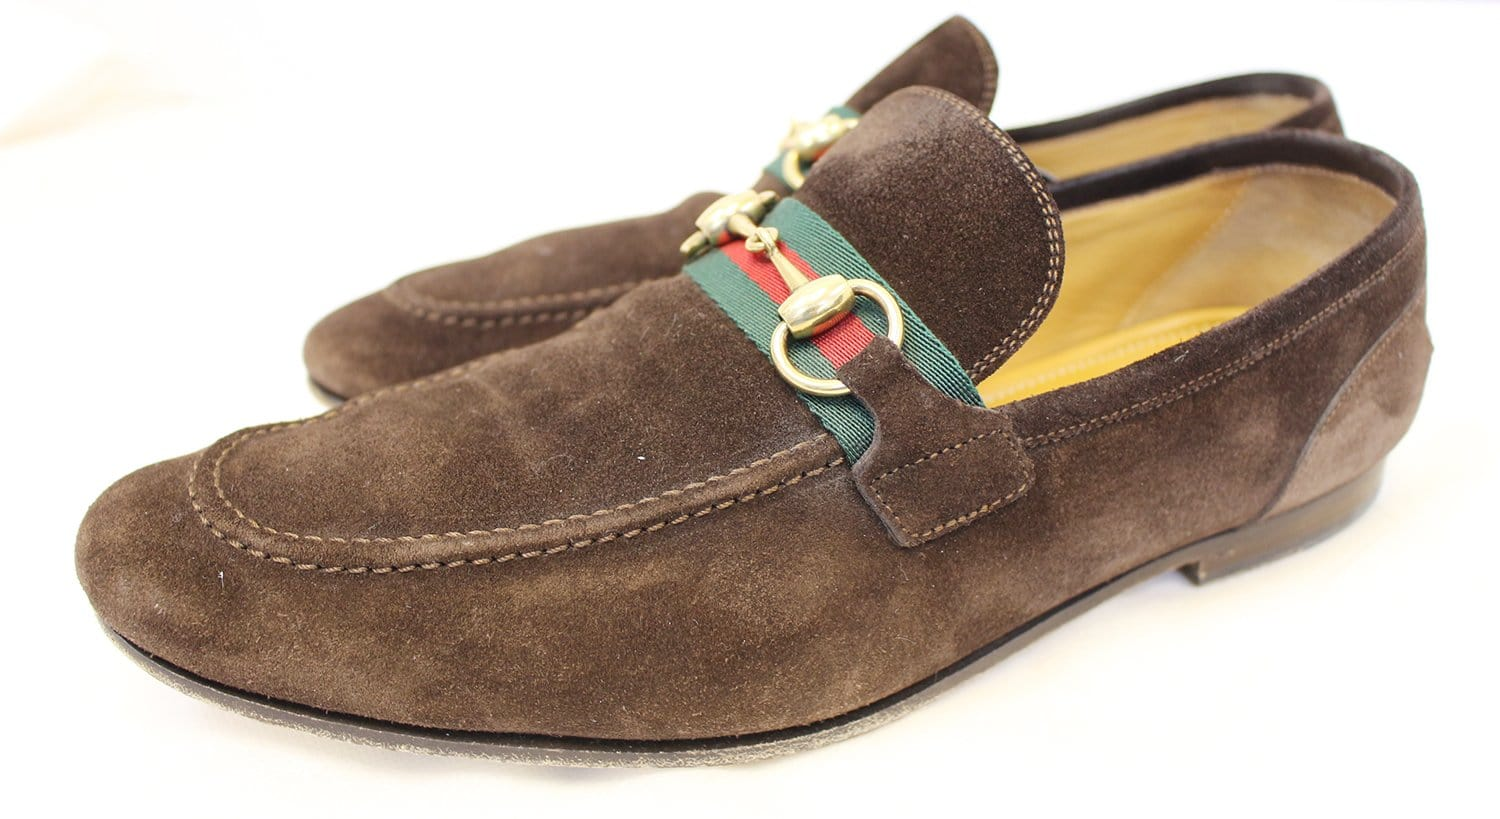 84b7cd5f1d973d GUCCI Men s Horsebit Suede Leather Loafer with Web Size 8